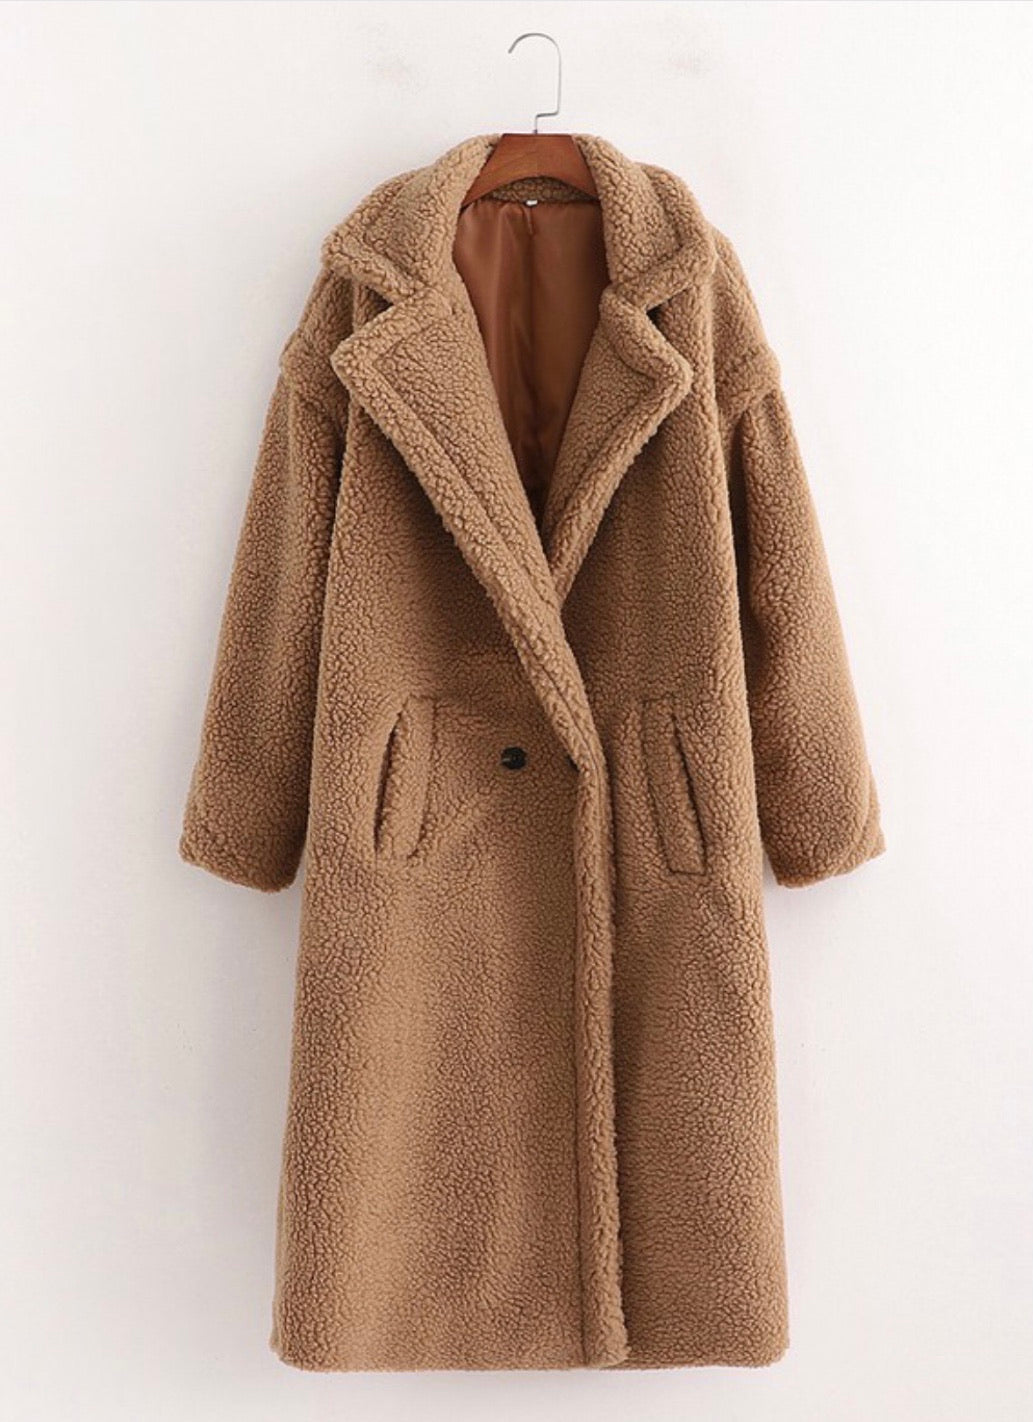 Long Flap Lapel Teddy Coat OUTERWEAR